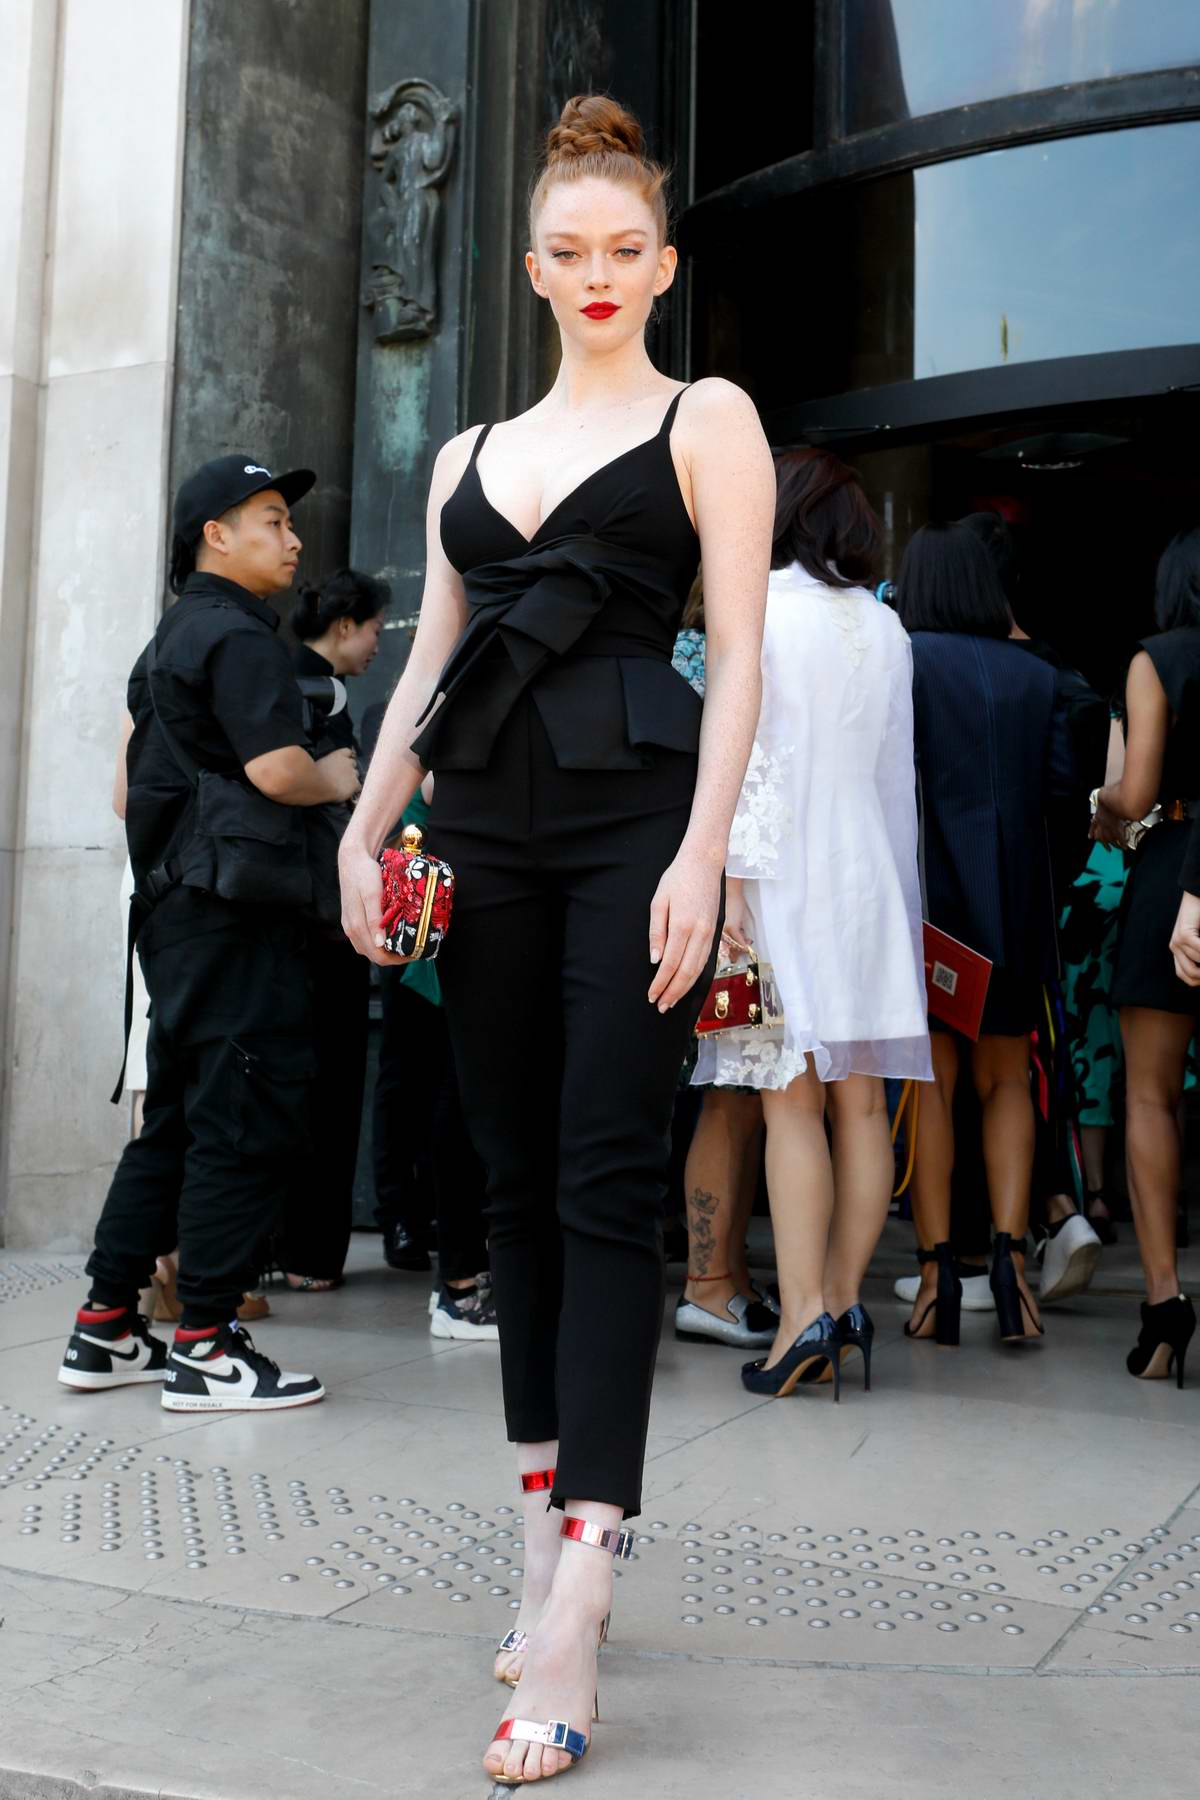 Larsen Thompson attends the Elie Saab Haute Couture Fall/Winter 2019/20 show during Paris Fashion Week in Paris, France